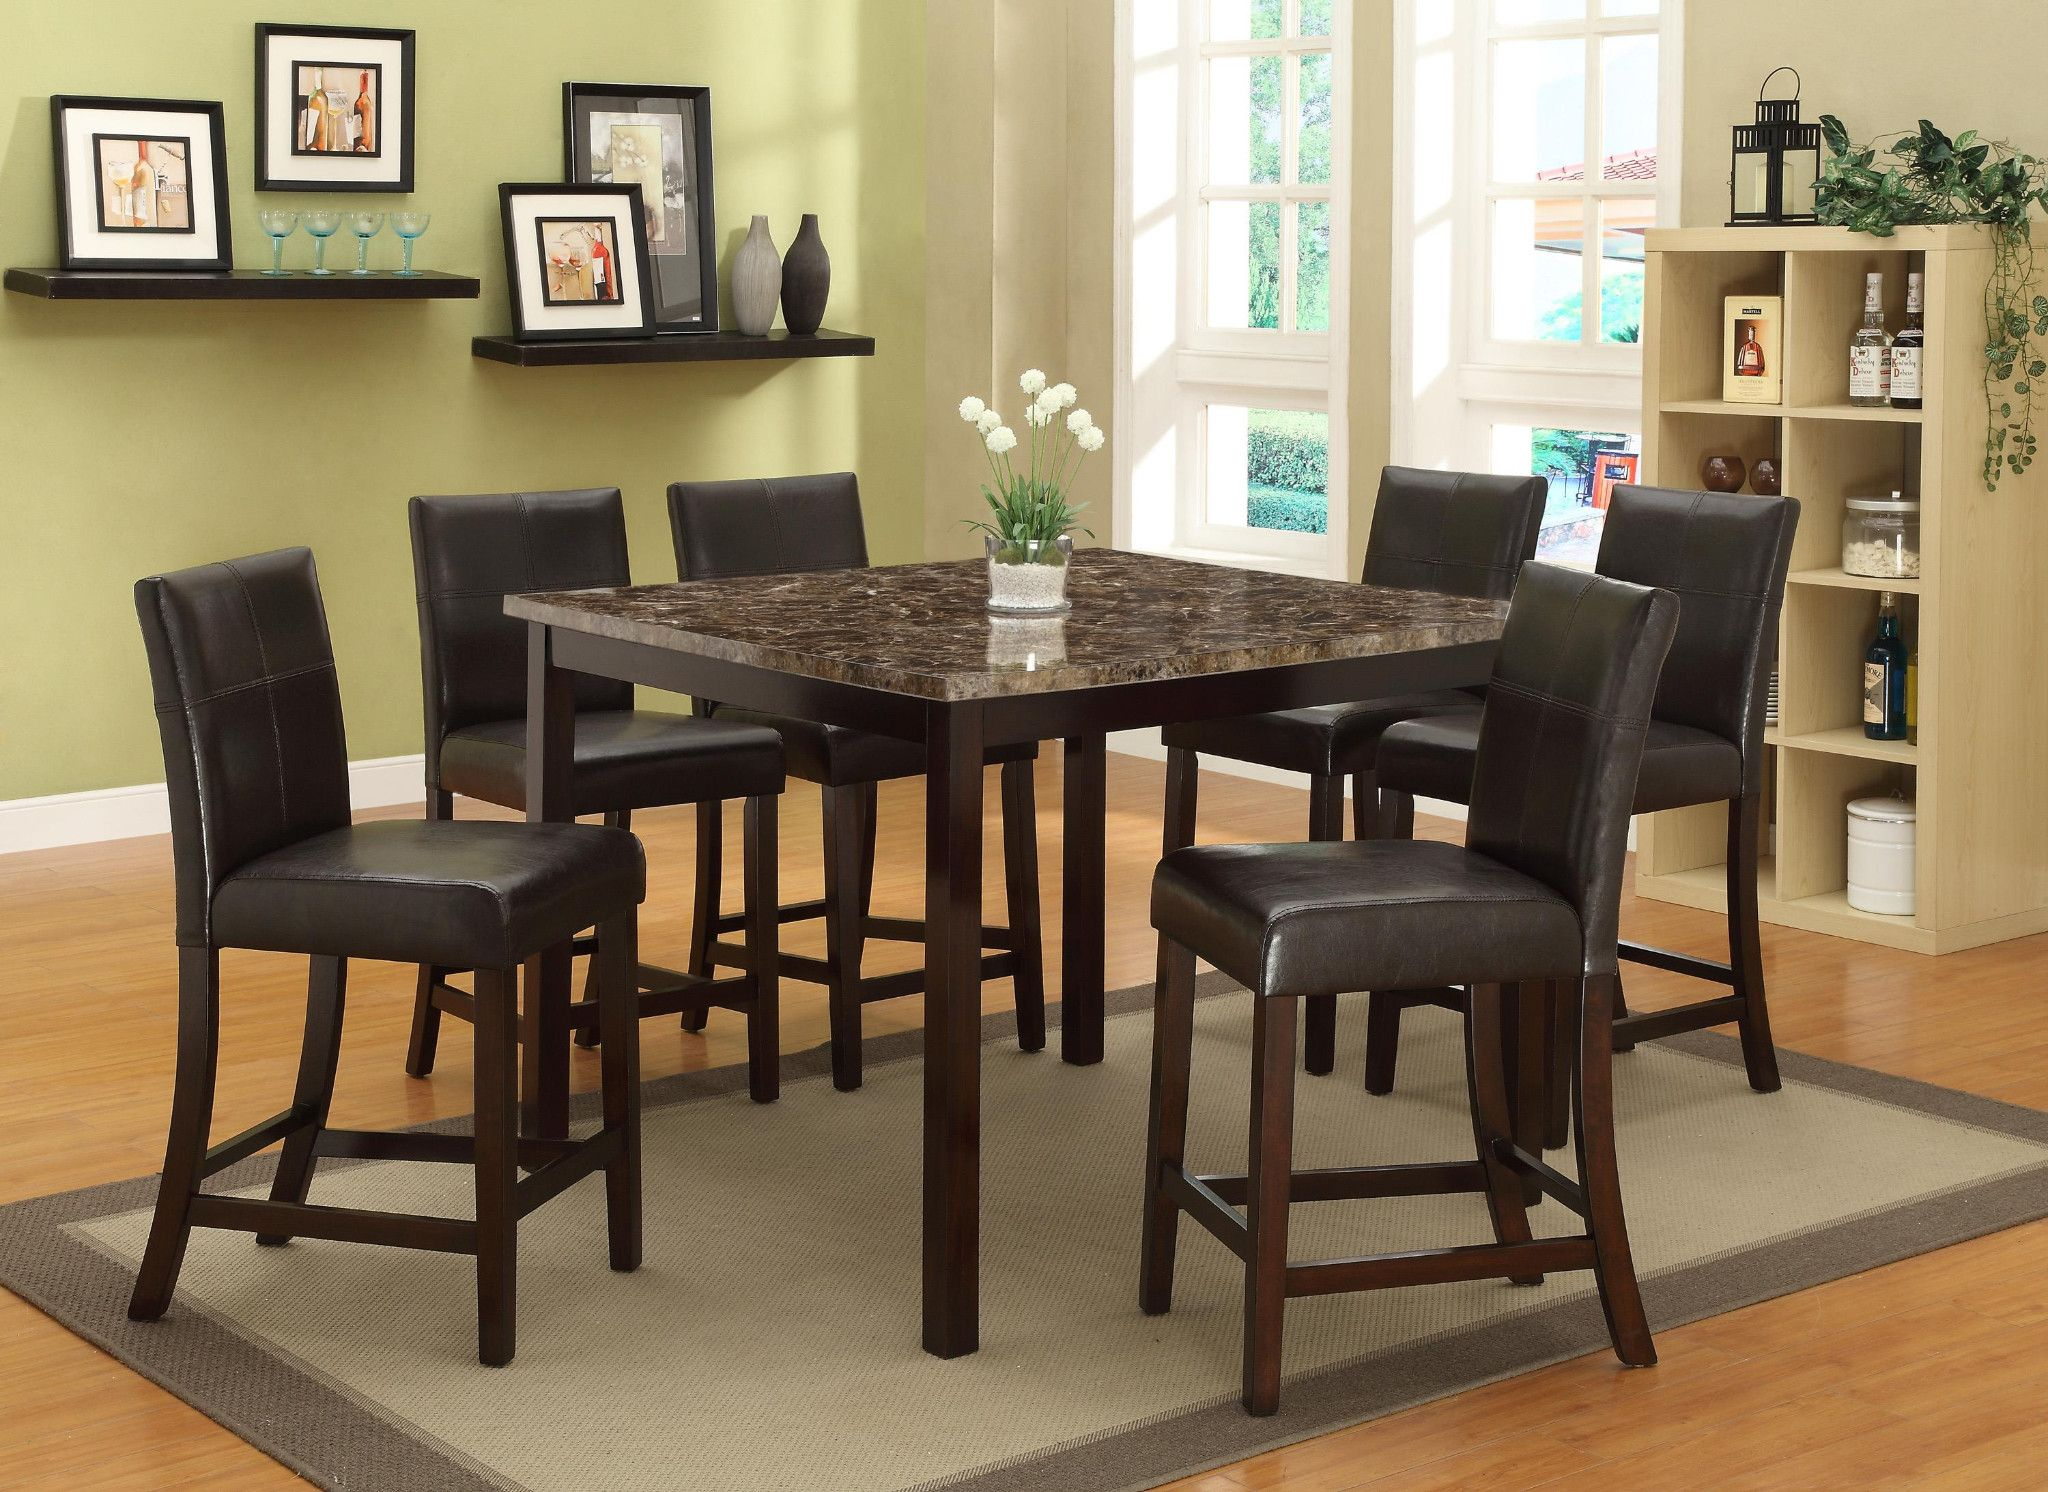 Pompei 5 Piece Counter Height Table And 4 Chairs $49900 Table 48 Stunning 36 Dining Room Table Decorating Design